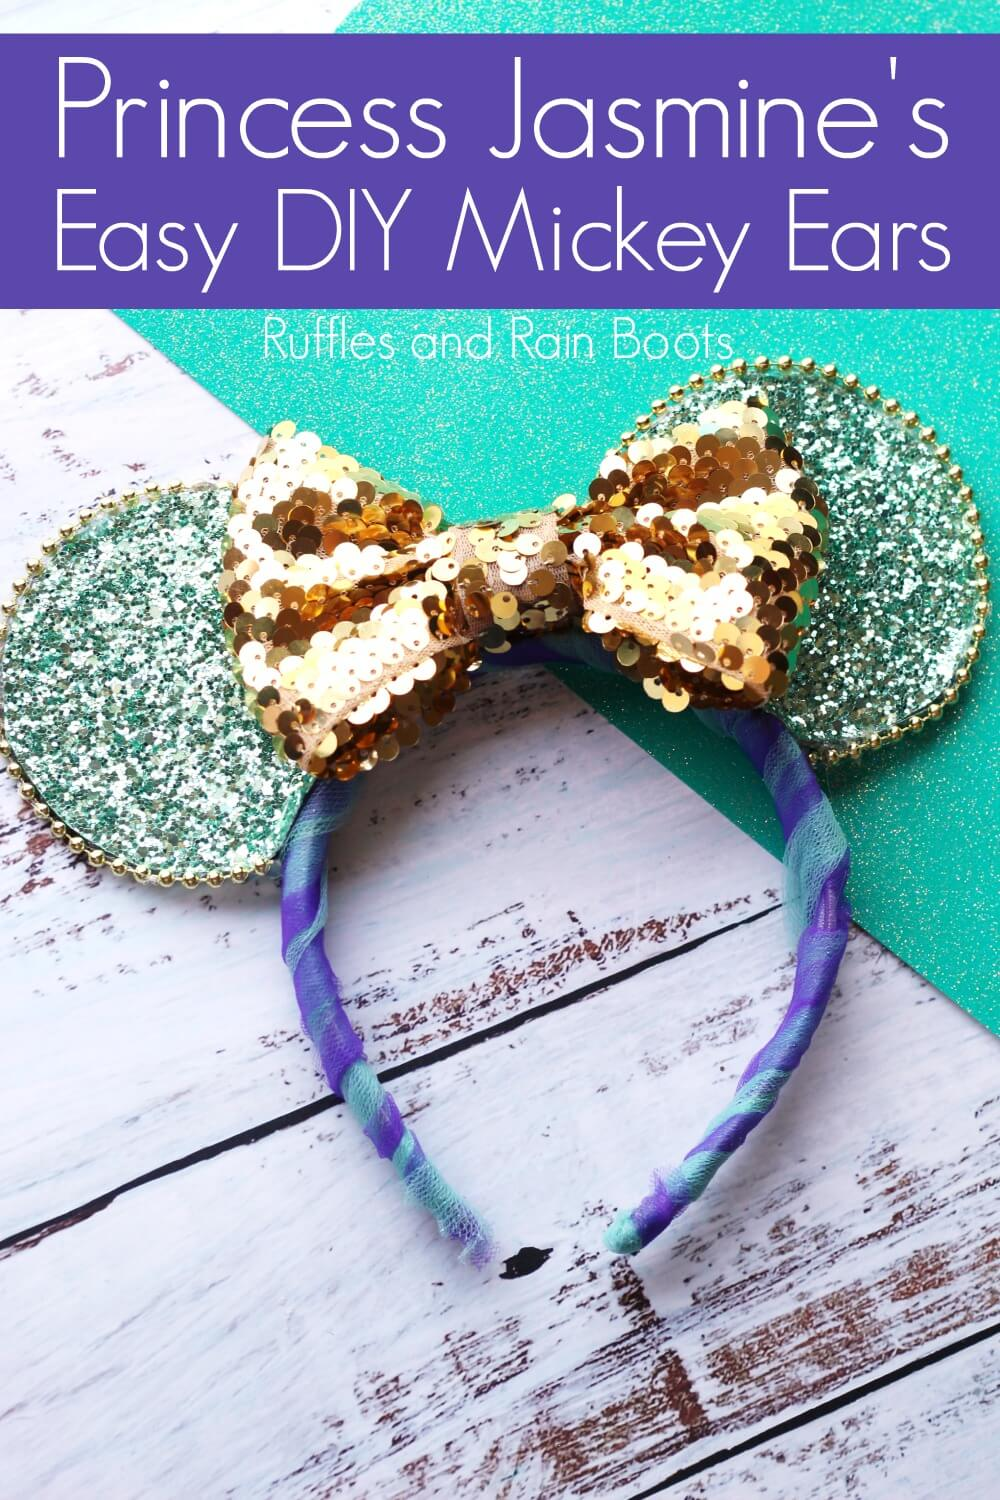 DIY Aladdin Minnie Mouse ears on wood and blue background with text which reads Princess Jasmine Easy DIY Mickey Mouse ears